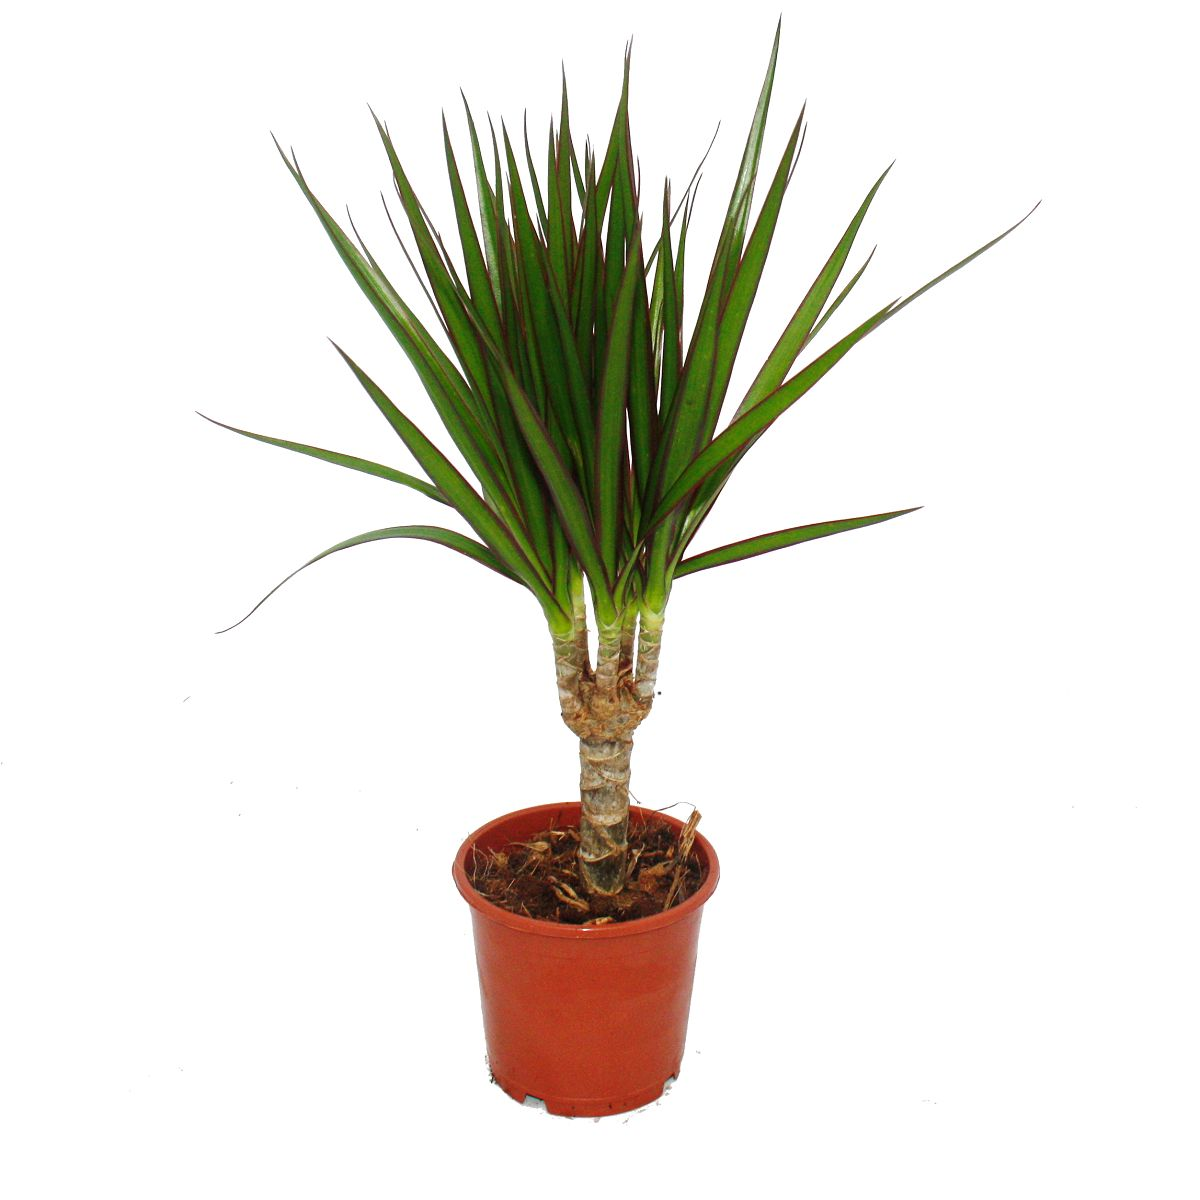 drachenbaum dracaena marginata 1 pflanze pflegeleichte zimmerpflanze. Black Bedroom Furniture Sets. Home Design Ideas